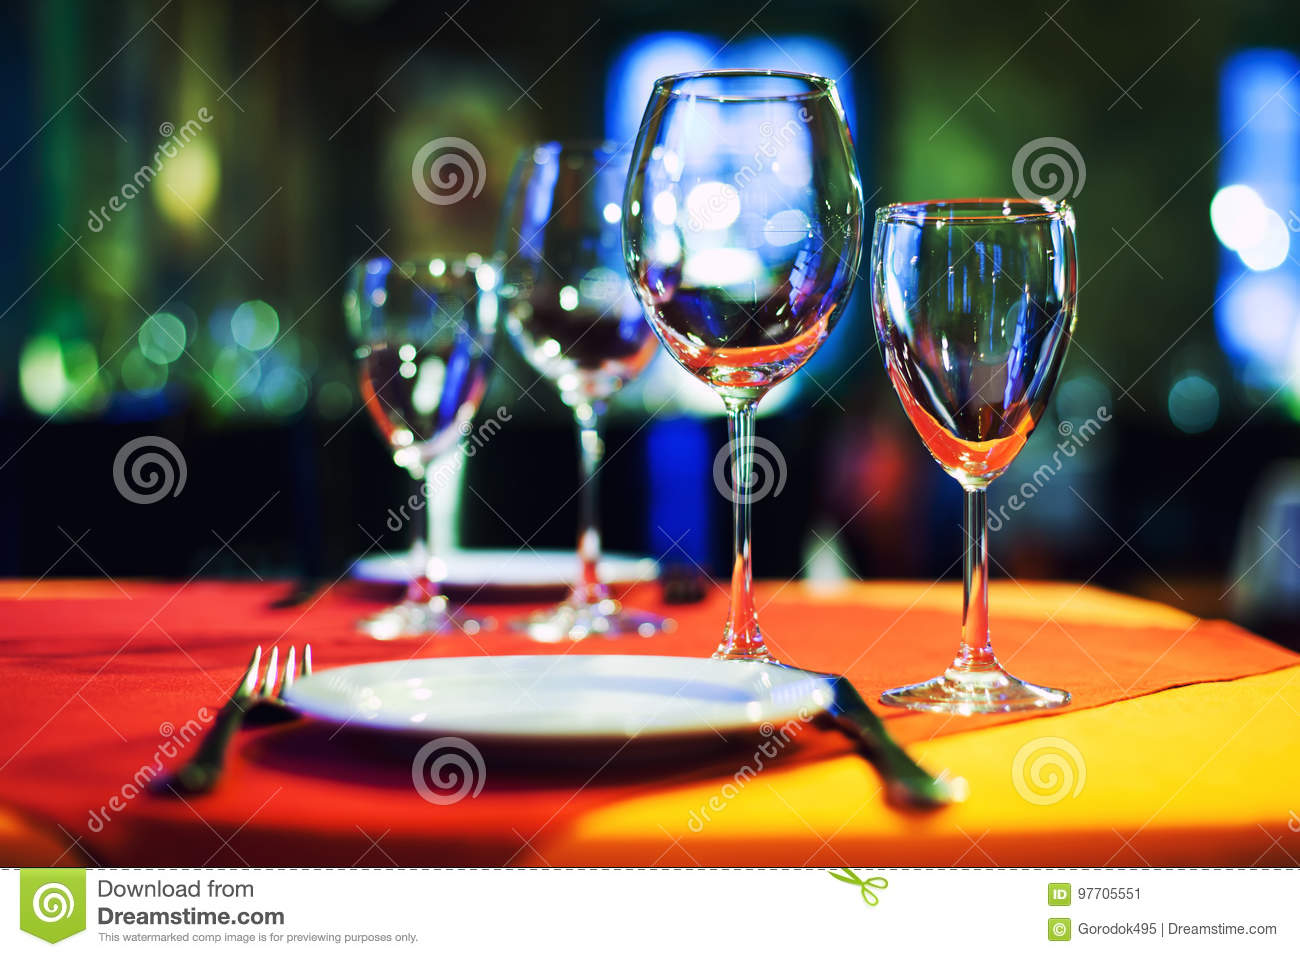 Romantic Cafe Restaurant Interior Background Served Table Empty Wine Glasses White Plate And Cutlery Bright Blurred Stock Image Image Of Glass Hotel 97705551